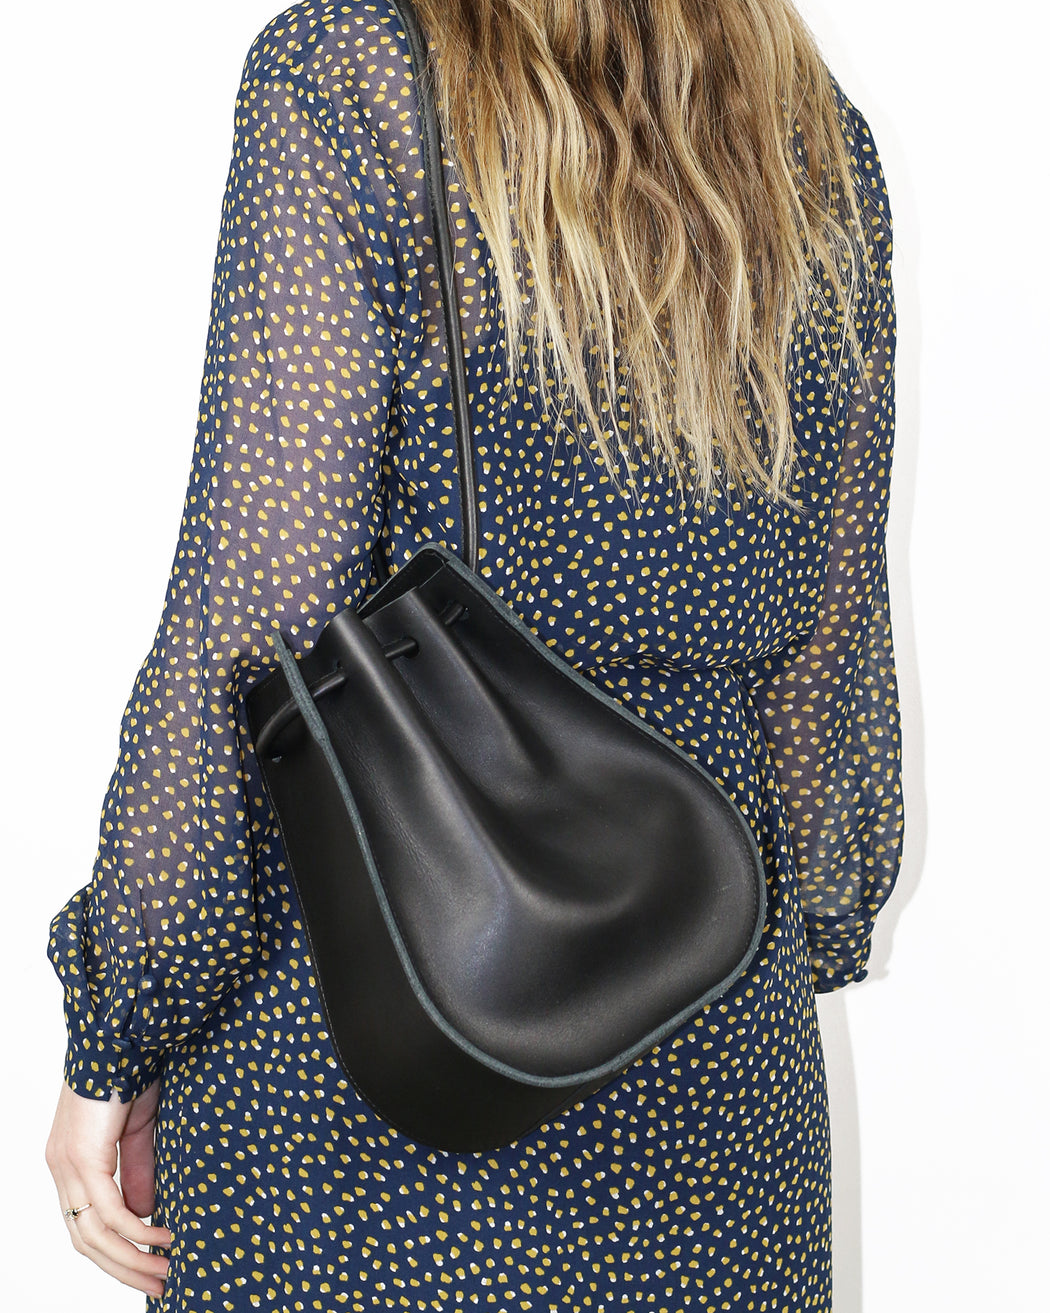 ARE:Camber Shoulder Bag – Black,ANOMIE